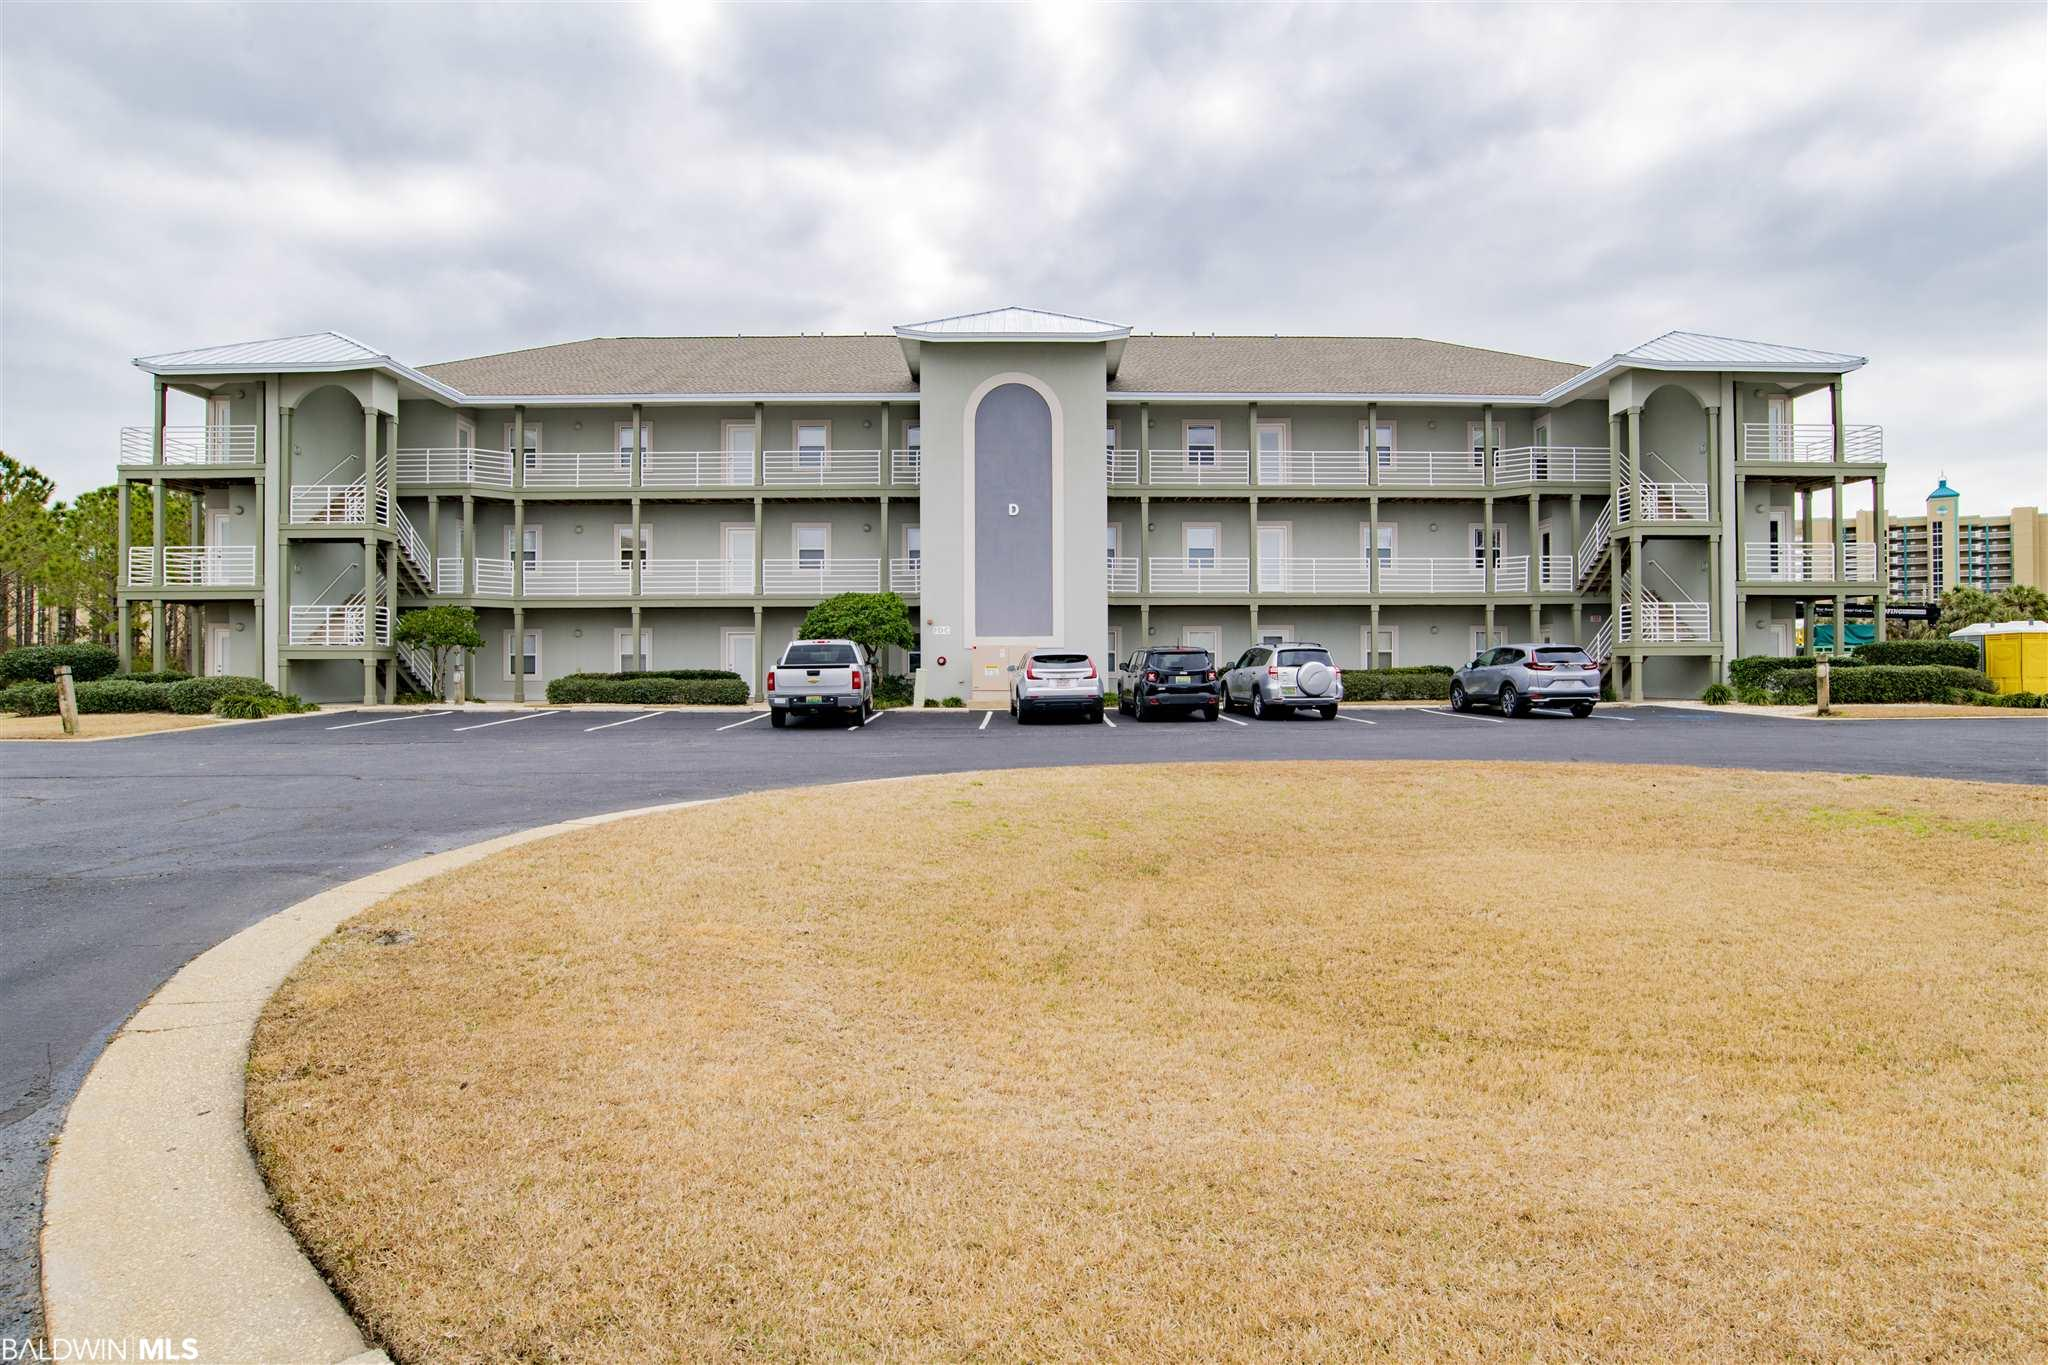 Very spacious 2 bedroom / 2 bath condo in beautiful Orange Beach. This fully furnished unit is a non rental and very well maintained. Romar Lakes also offers deeded beach access with crossing light, a great pool with grilling area, and a lake gazebo.